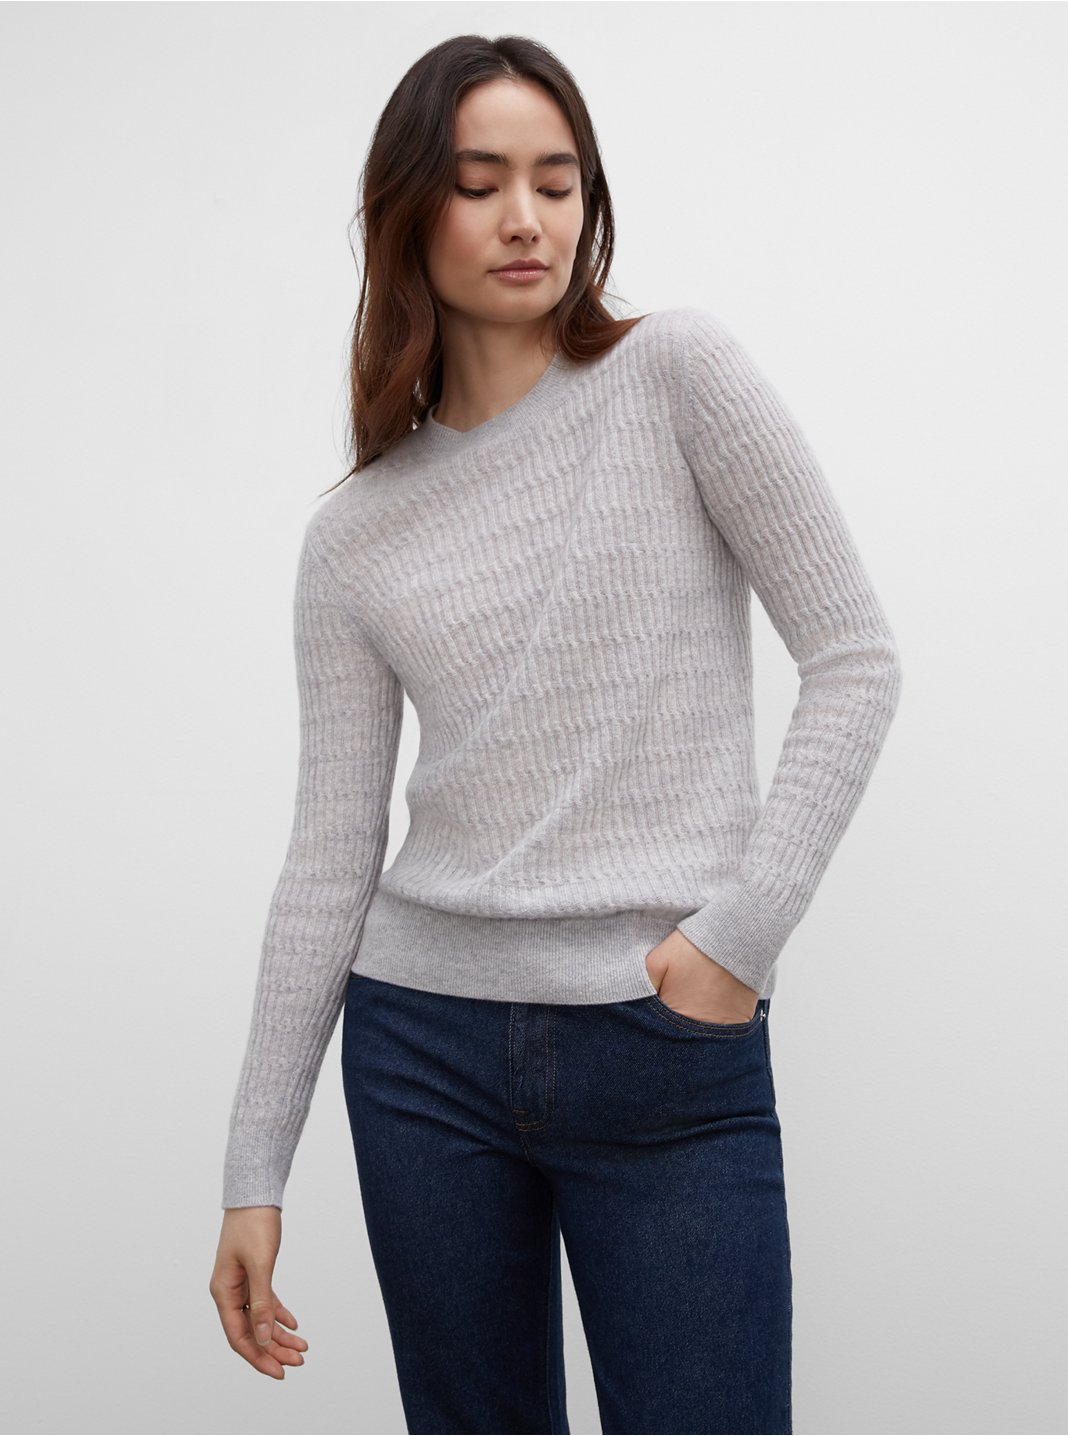 Long Sleeve Stitch Cashmere Sweater